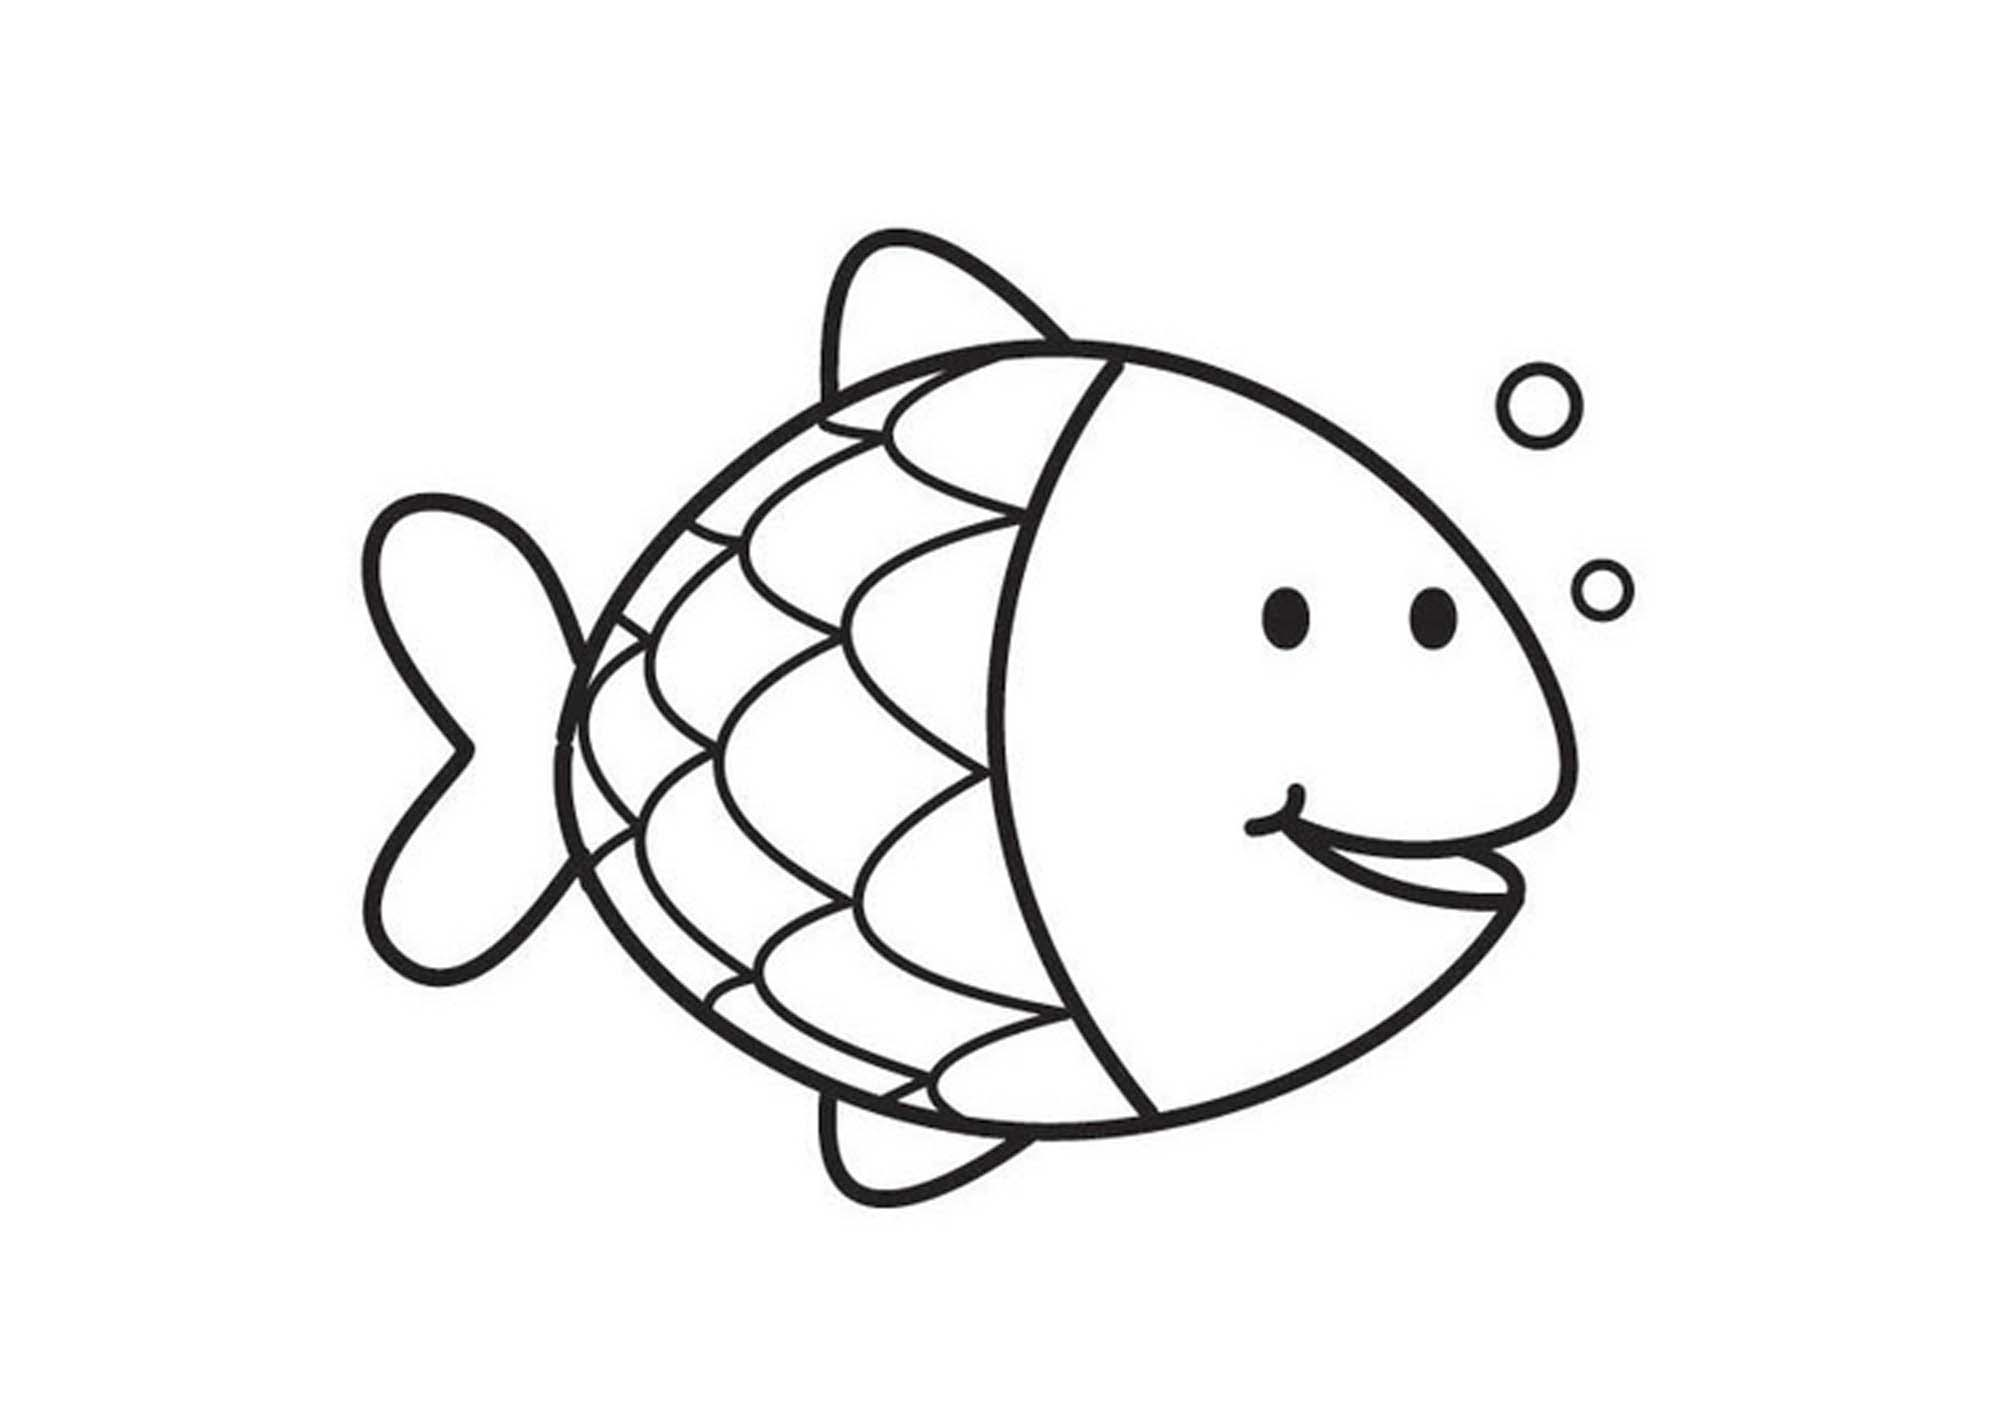 Adult Cute Fishes Coloring Pages Images best fish coloring page big pages gallery images